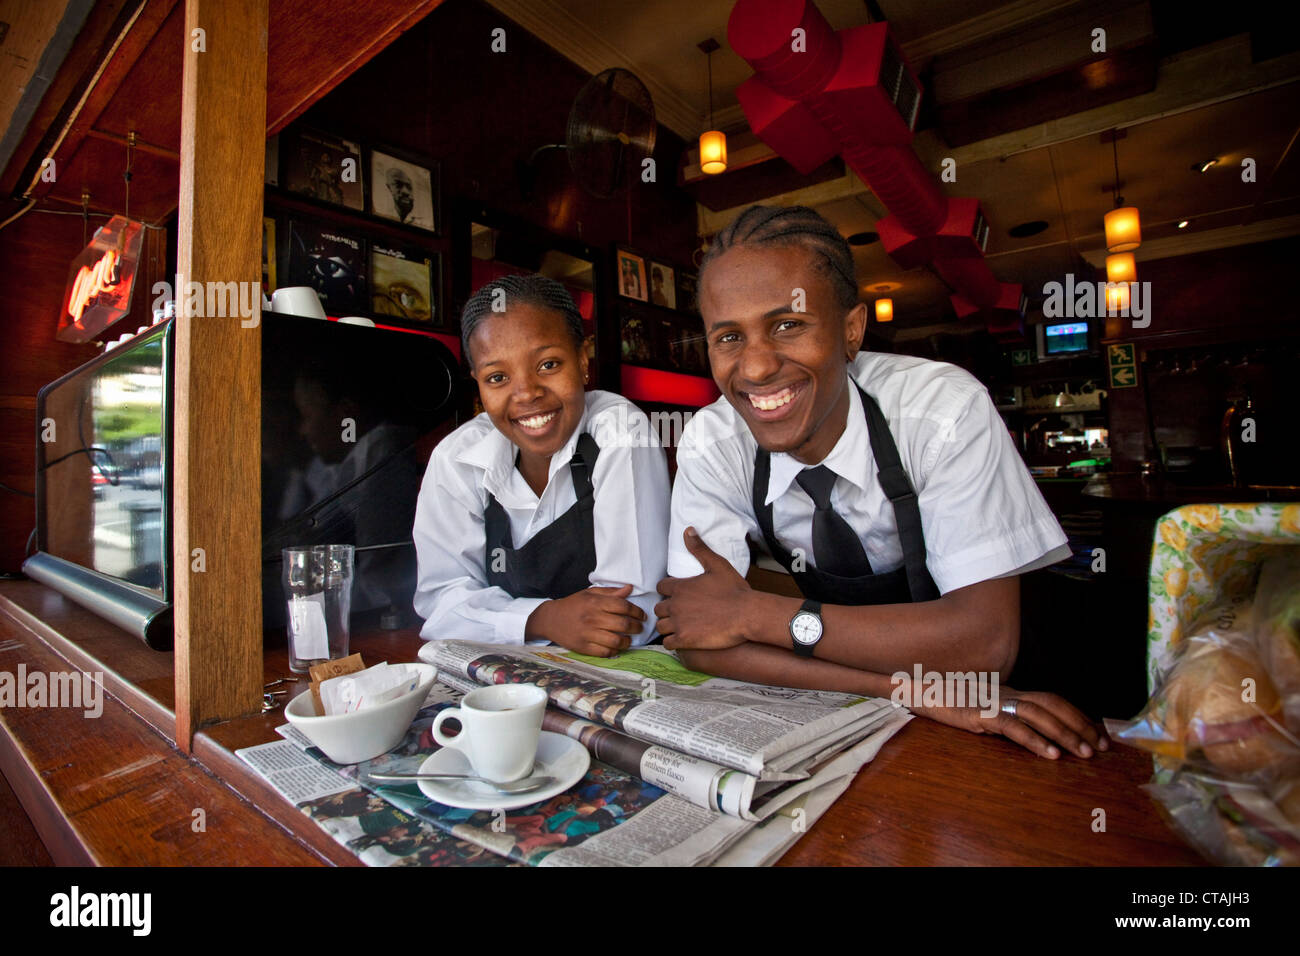 Two waiters at a coffee shop on Long Street, Cape Town, Western Cape, South Africa - Stock Image